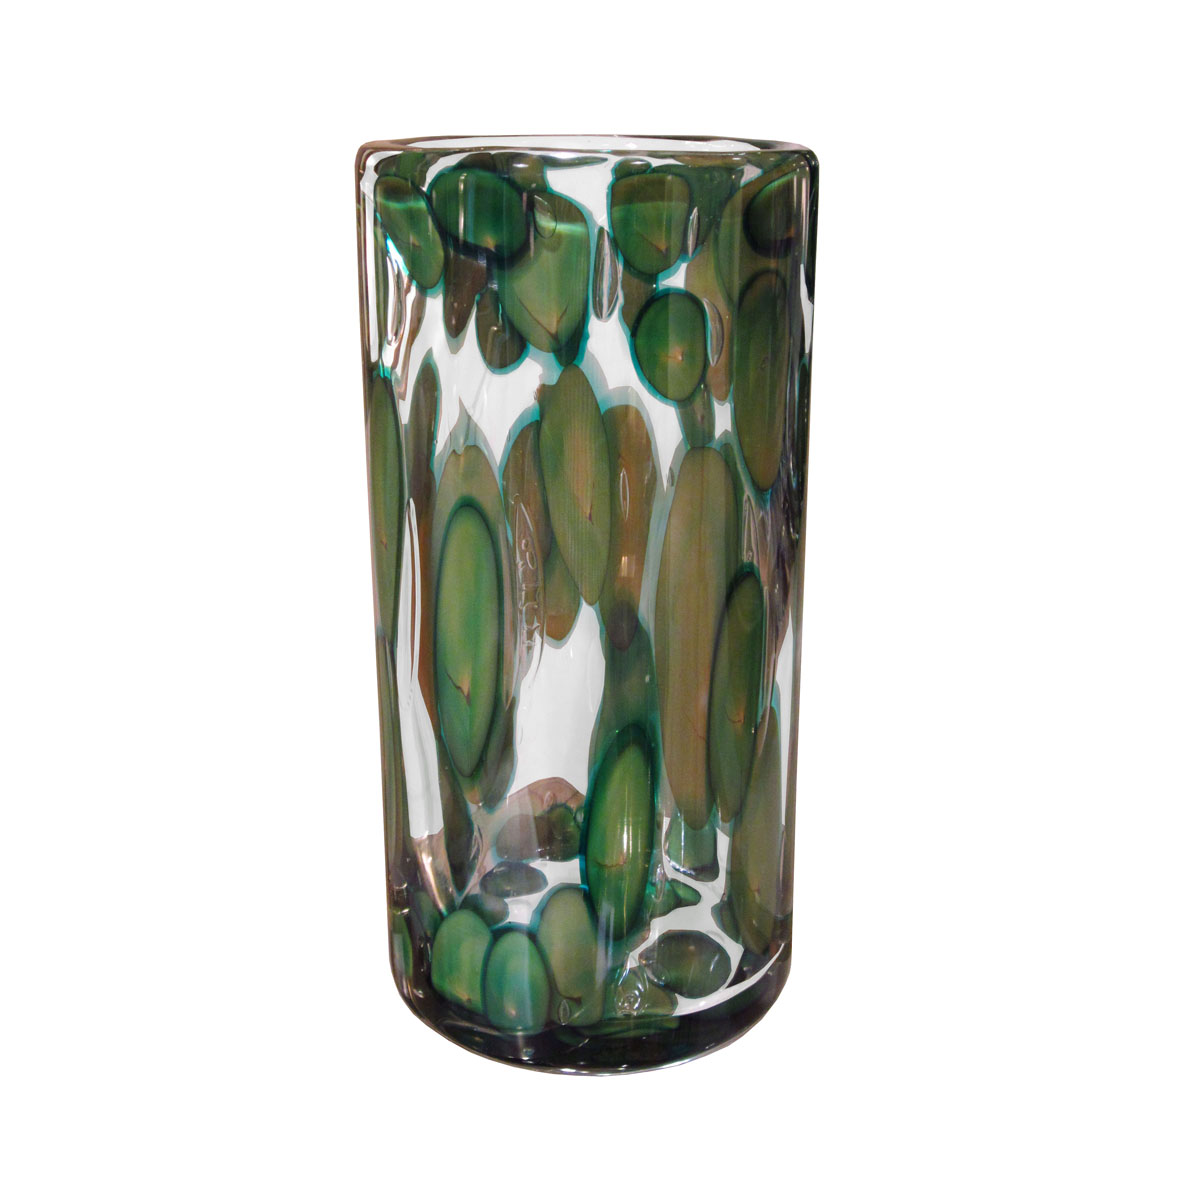 Large Cylindrical Spotted Murano Glass Vase Signed Vases John Salibello